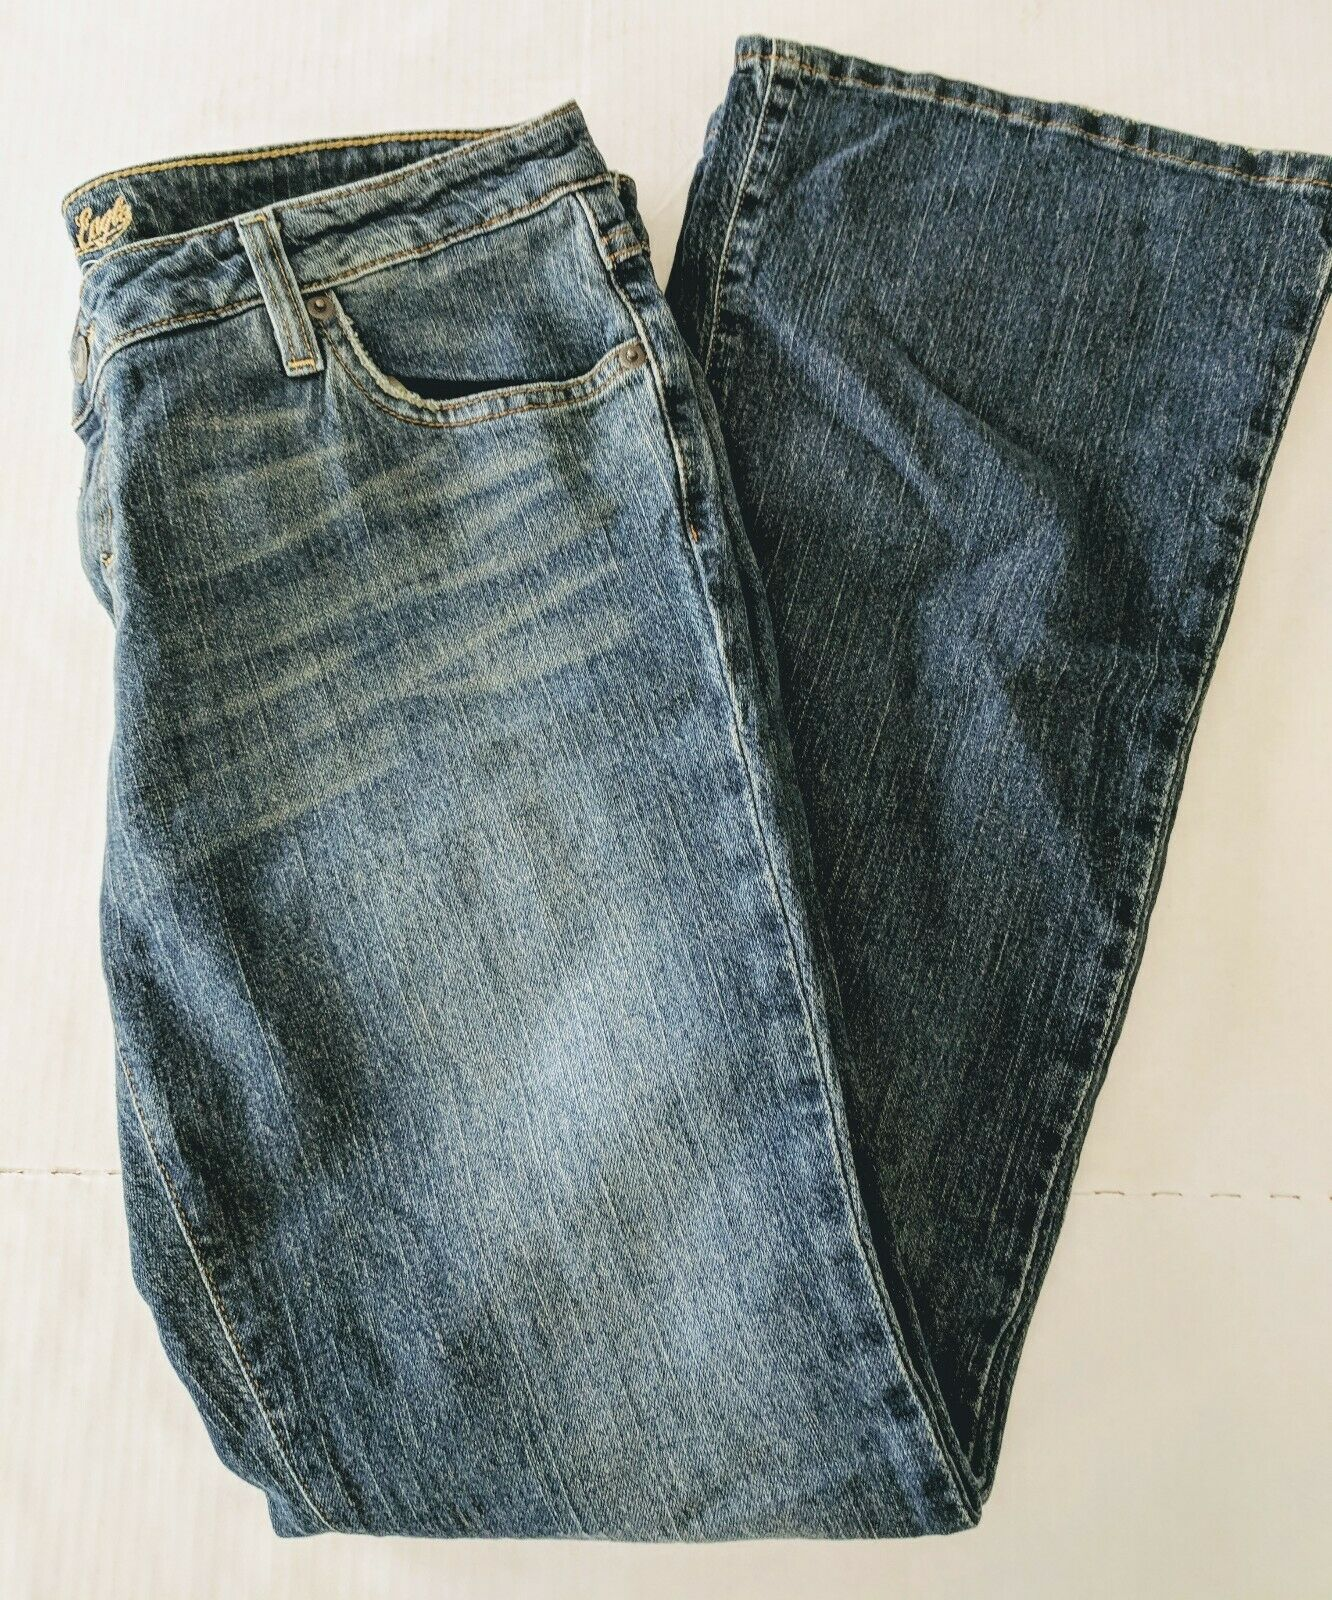 NWT Jeans Womens 12R American Eagle Outfitters Stretch Boot Cut Denim